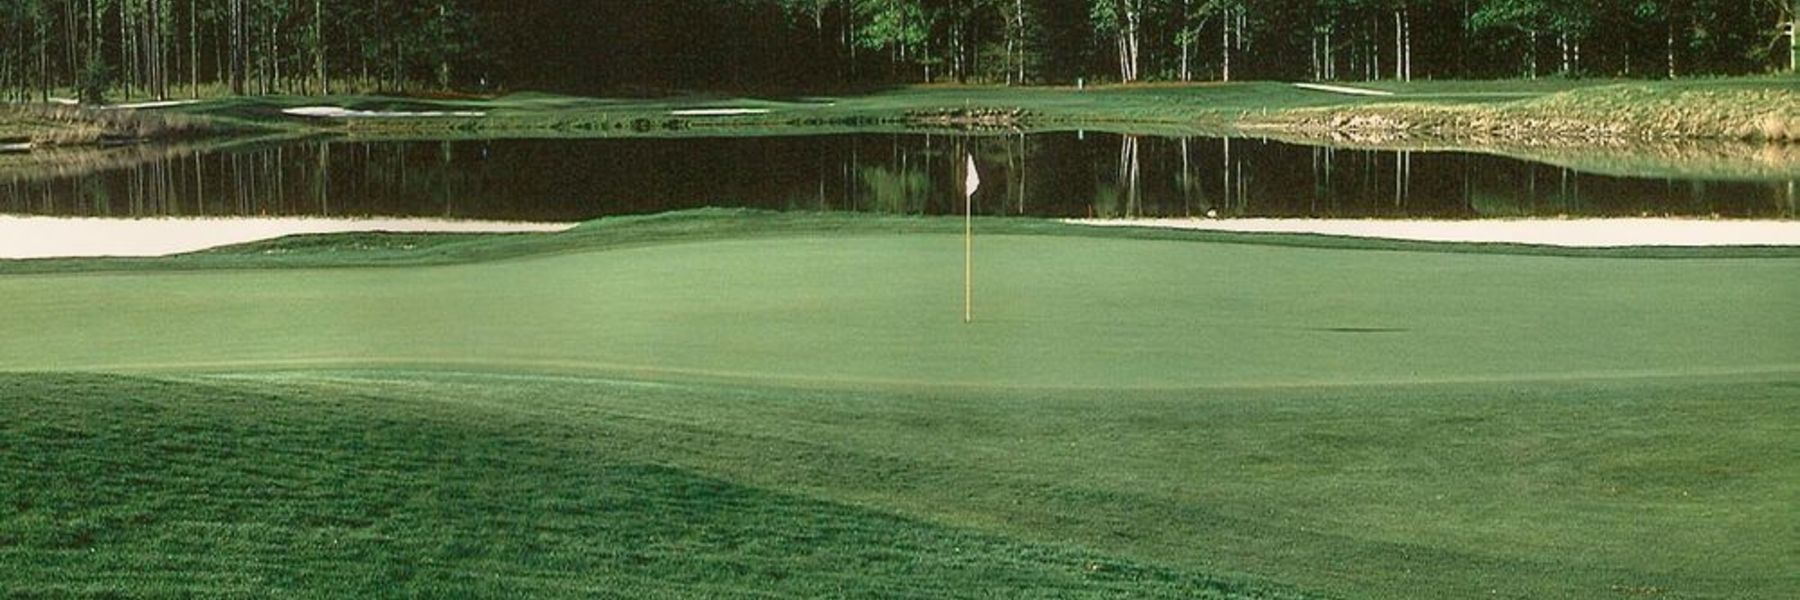 Golf Vacation Package - 3 Nights at the Sandcastle Beachfront Hotel + 3 Rounds for $145 per person / per day!